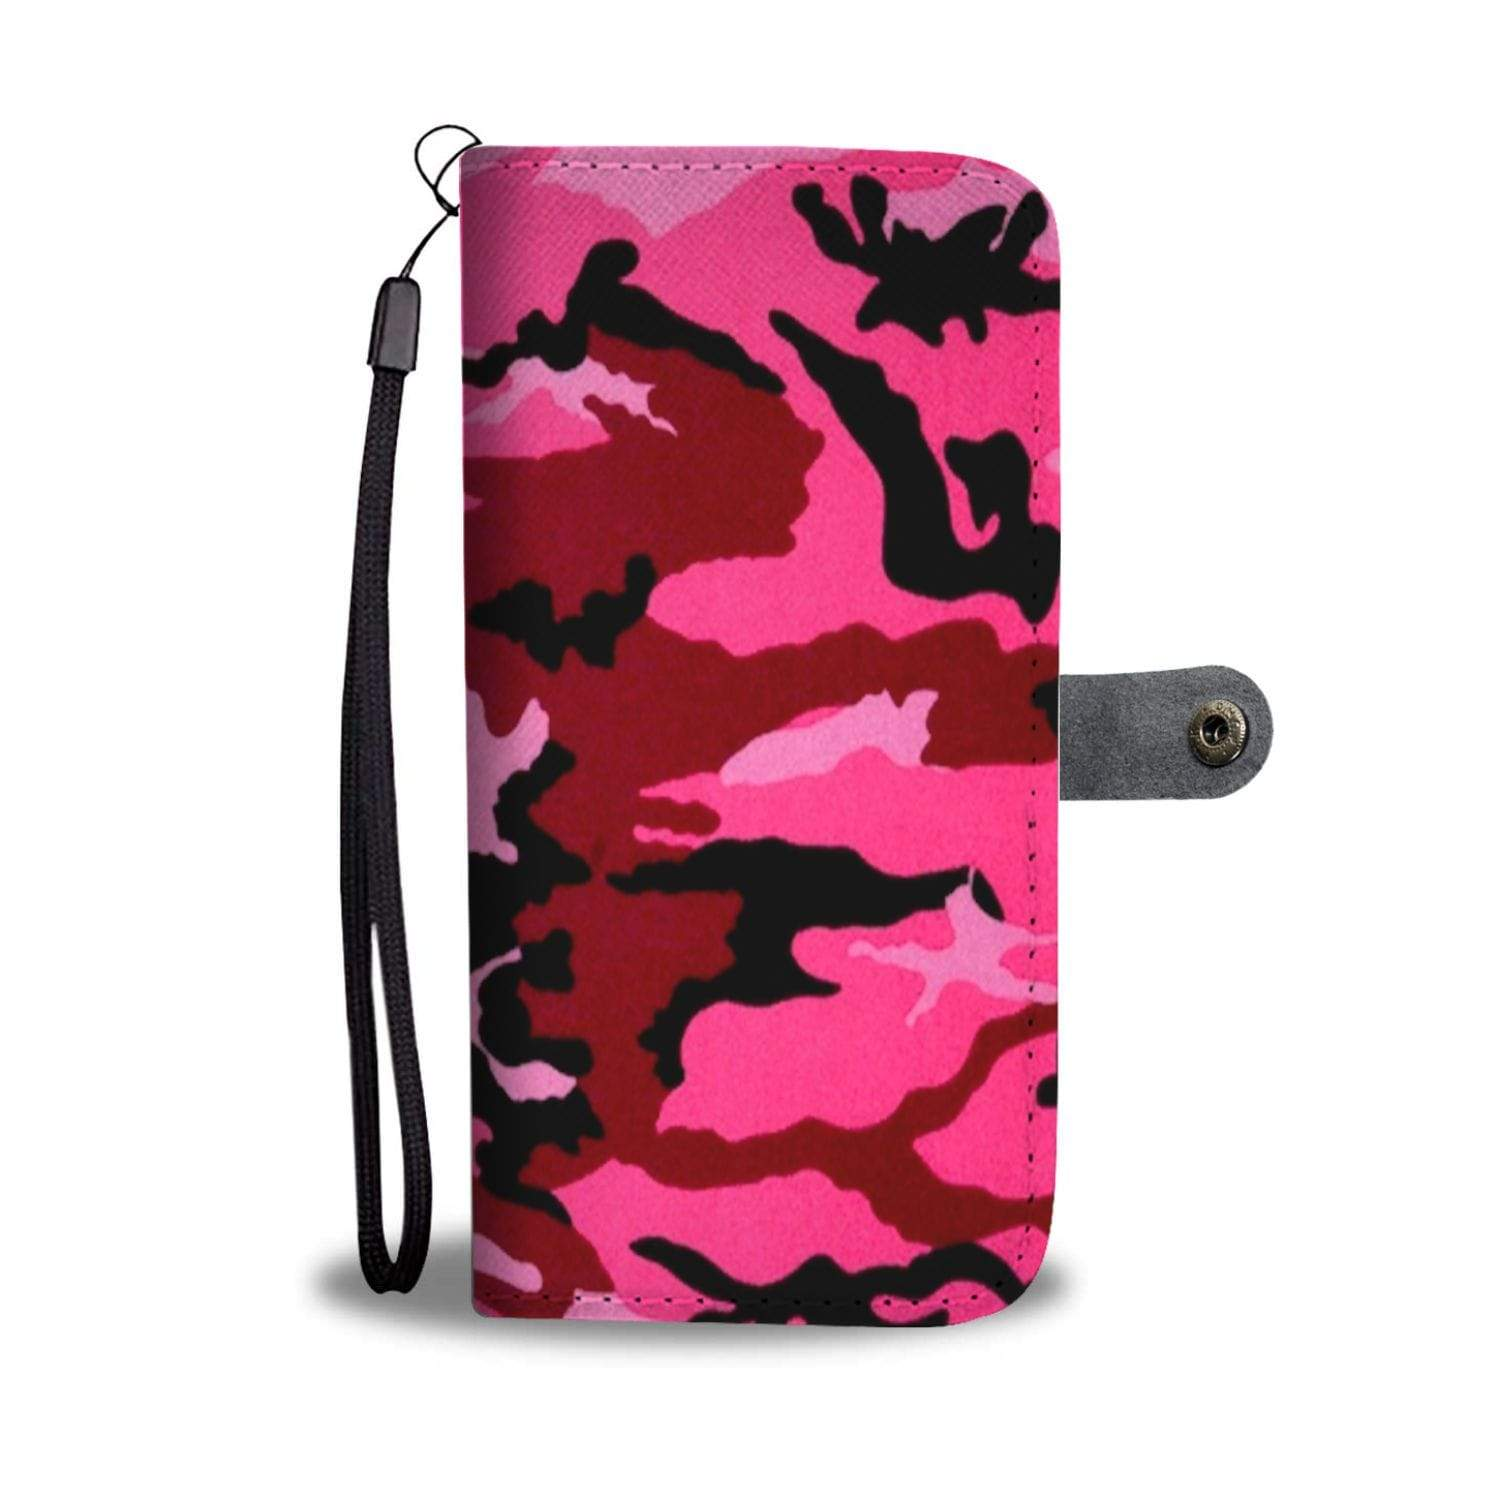 New Custom Designed Pink Camo Wallet Case - Merchandize.ca